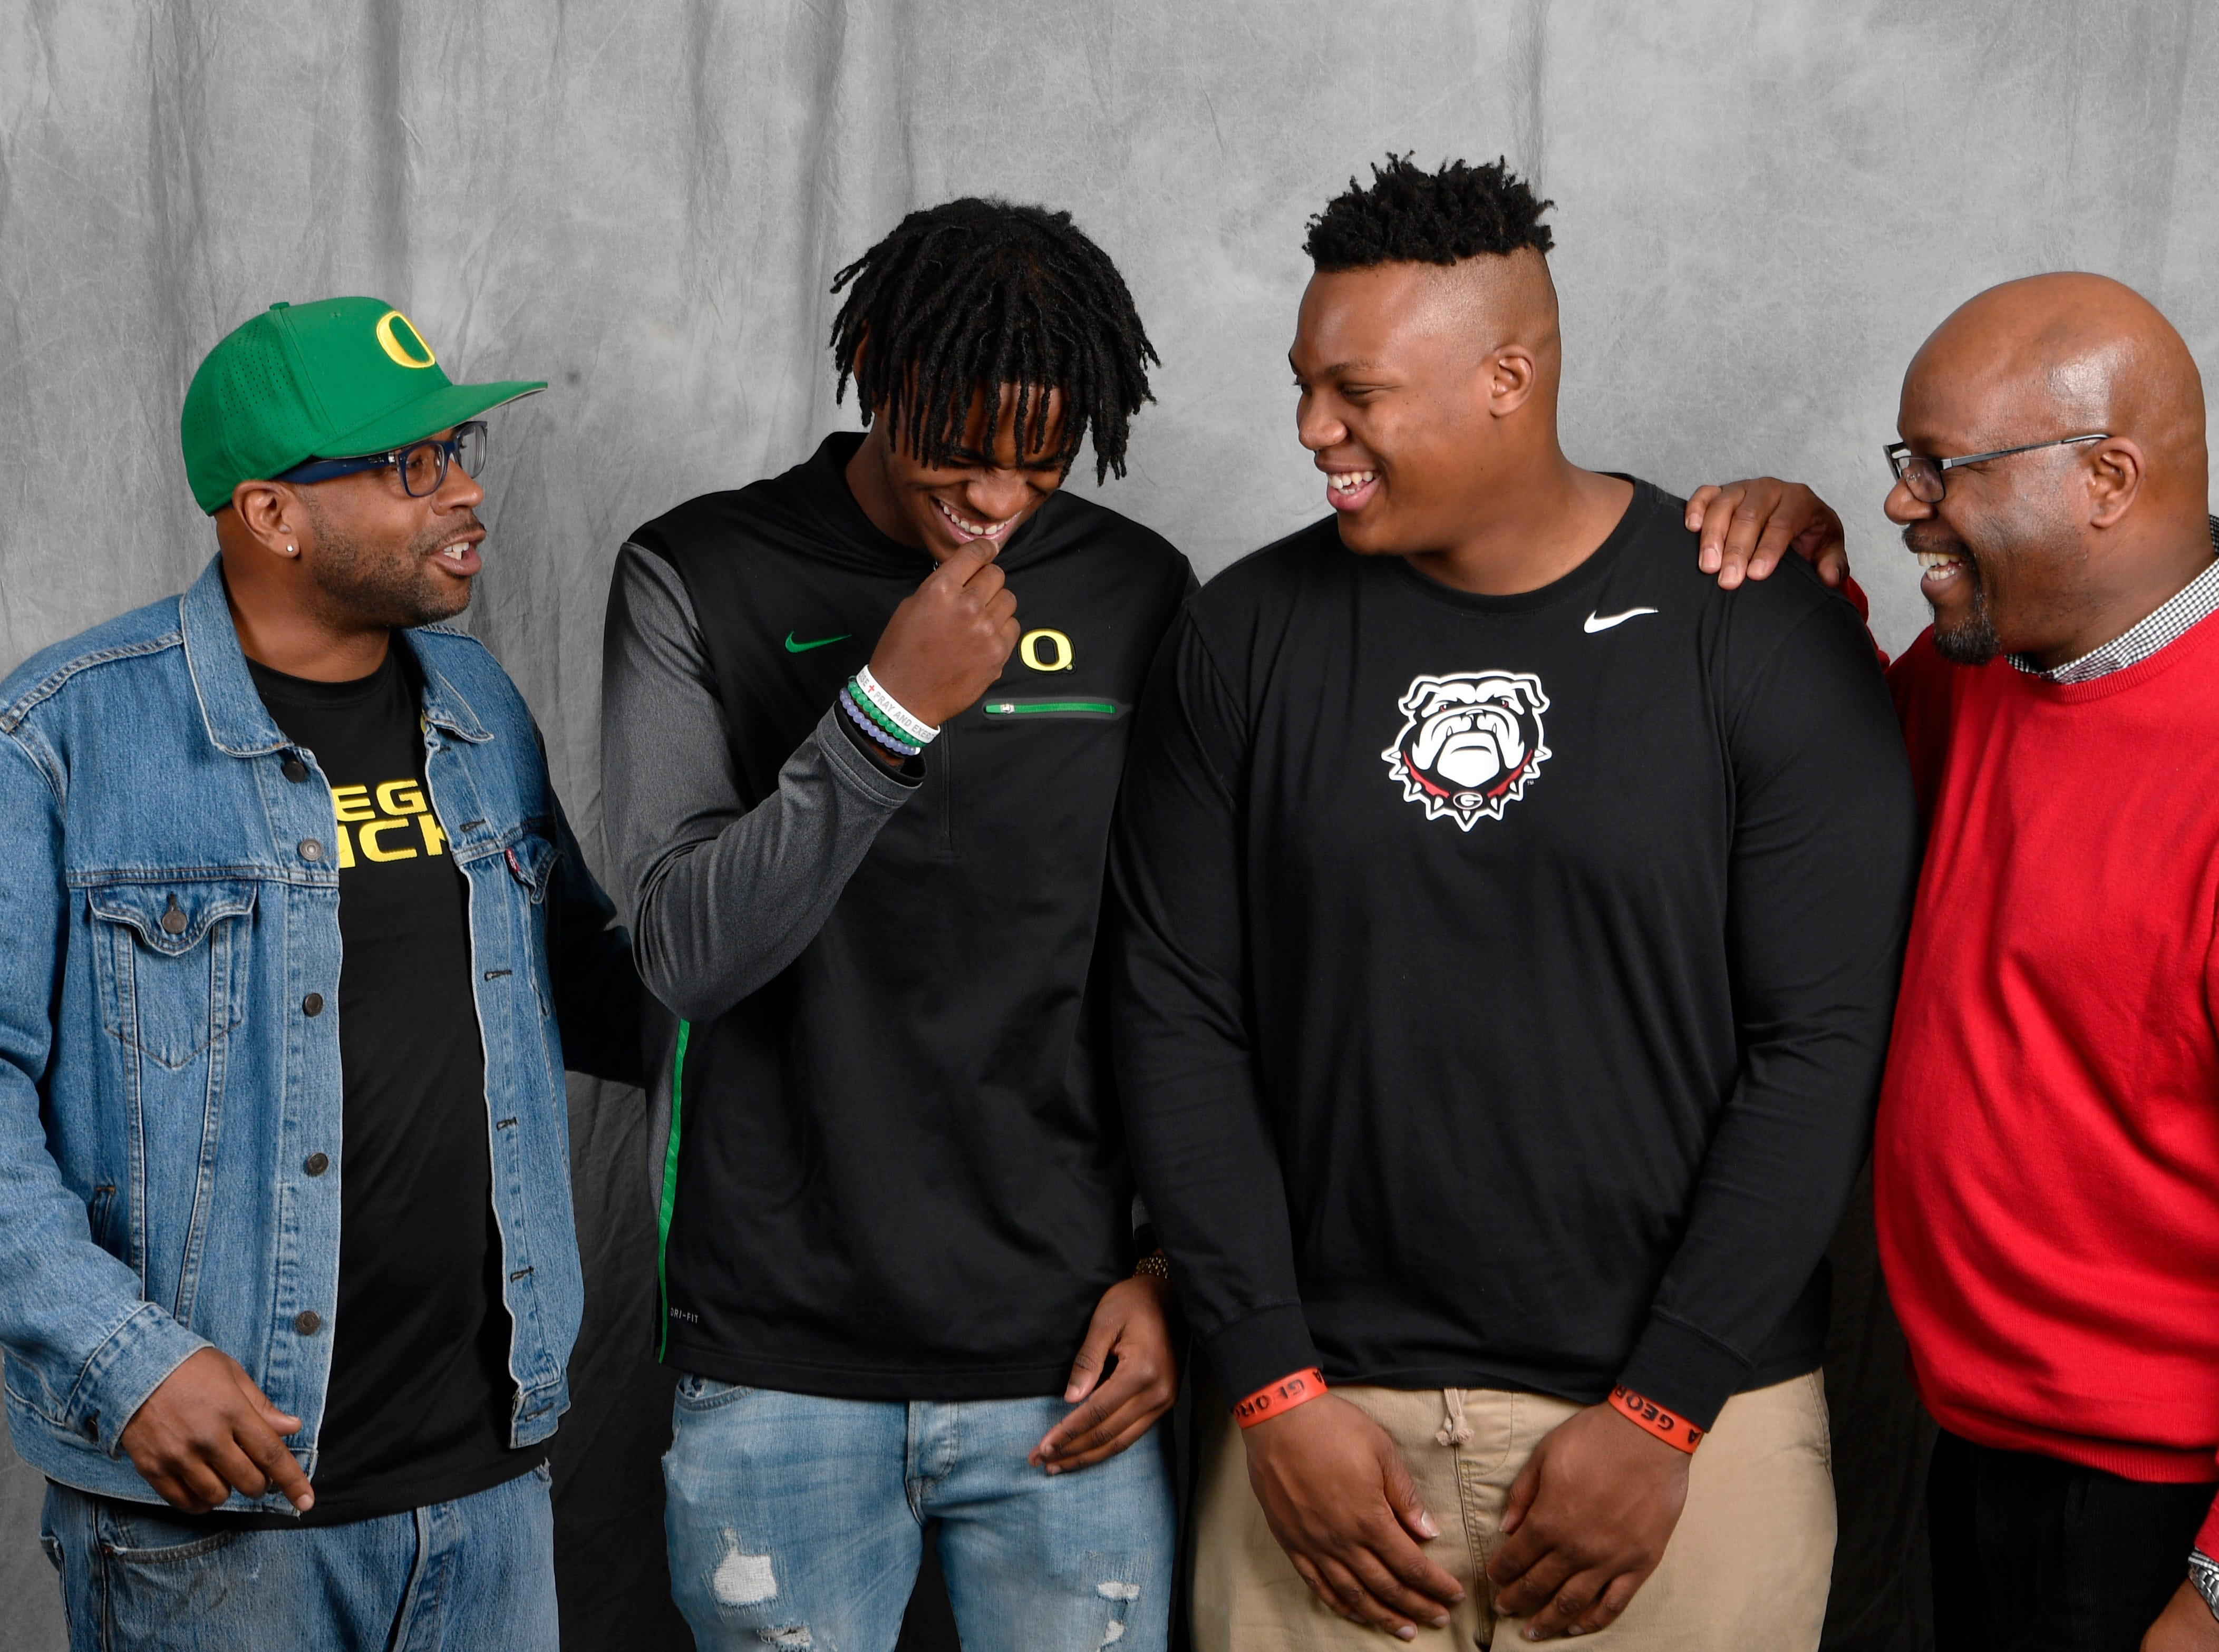 FRA's Lance Wilhoite and Tymon Mitchell pose with their dads in the Tennessean's photo booth on the first day of the early signing period. From left, are Larry Wilhoite, Lance Wilhoite, Tymore Mitchell and Dale Mitchell. Lance signed with Oregon to play football while Tymon signed with Georgia.